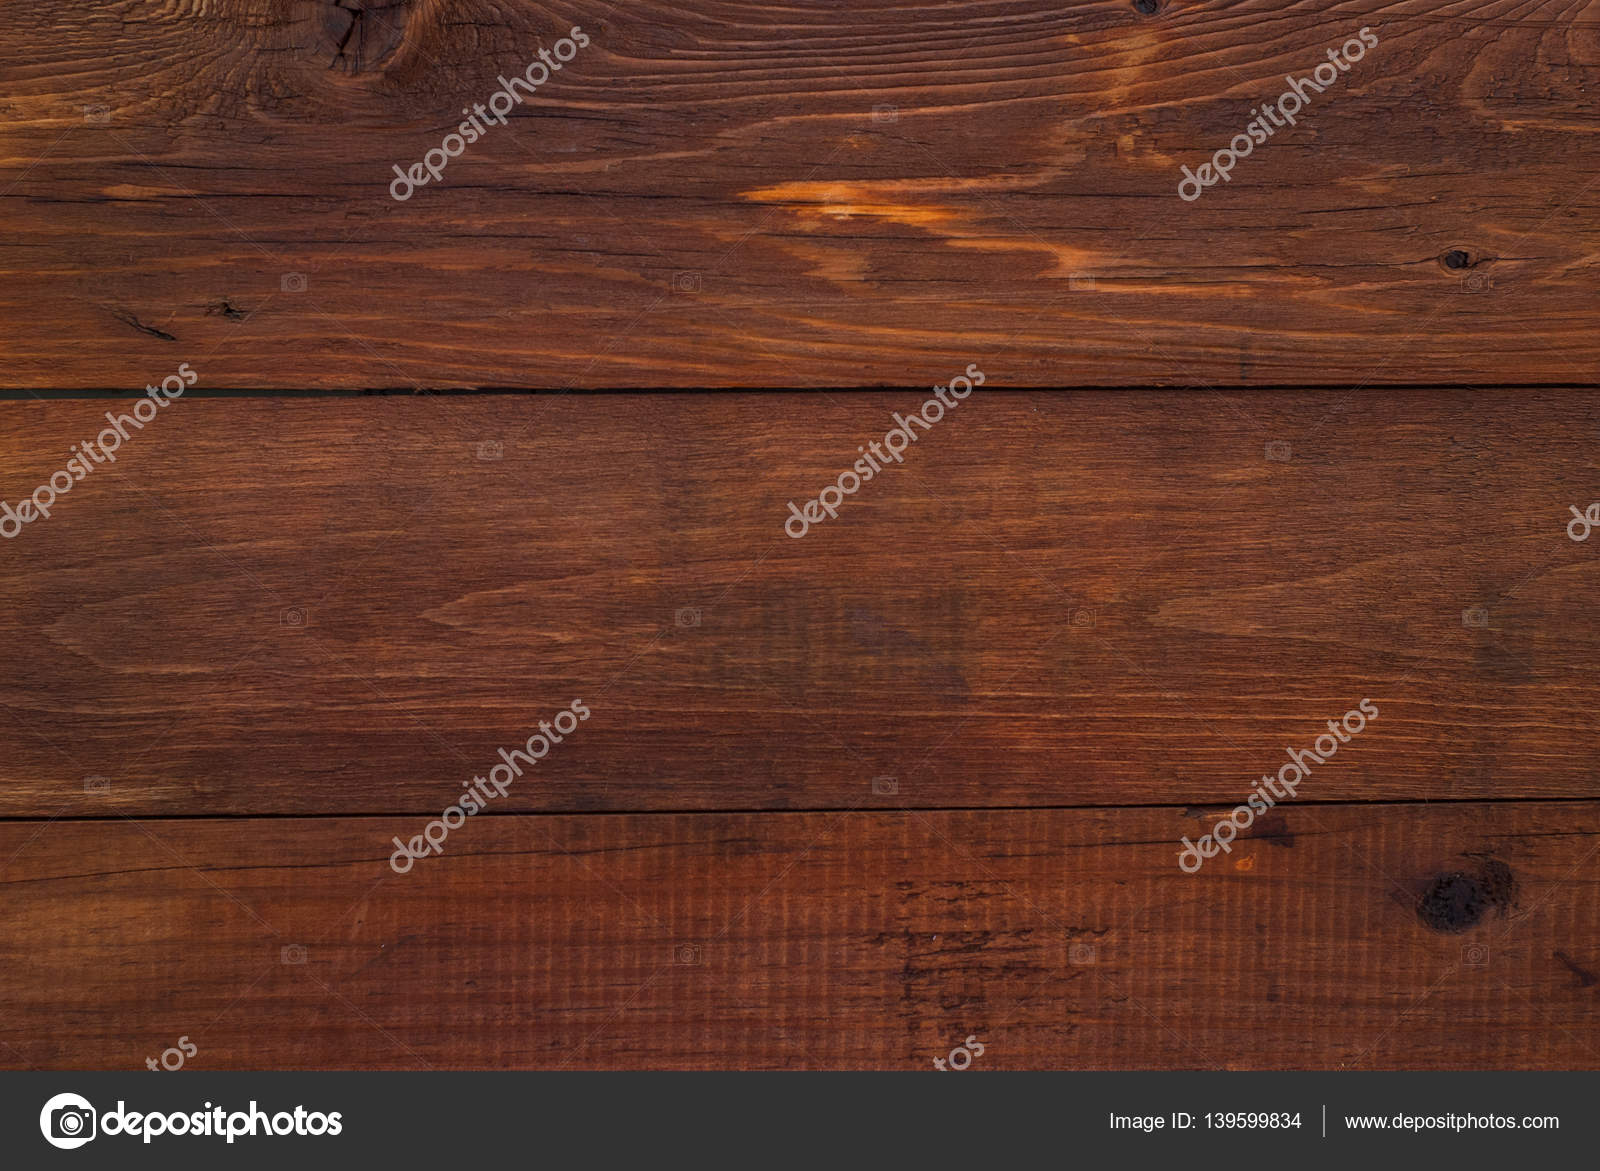 Wood texture wooden plank - Wood Texture Wooden Plank Grain Background Striped Timber Desk Close Up Stock Photo